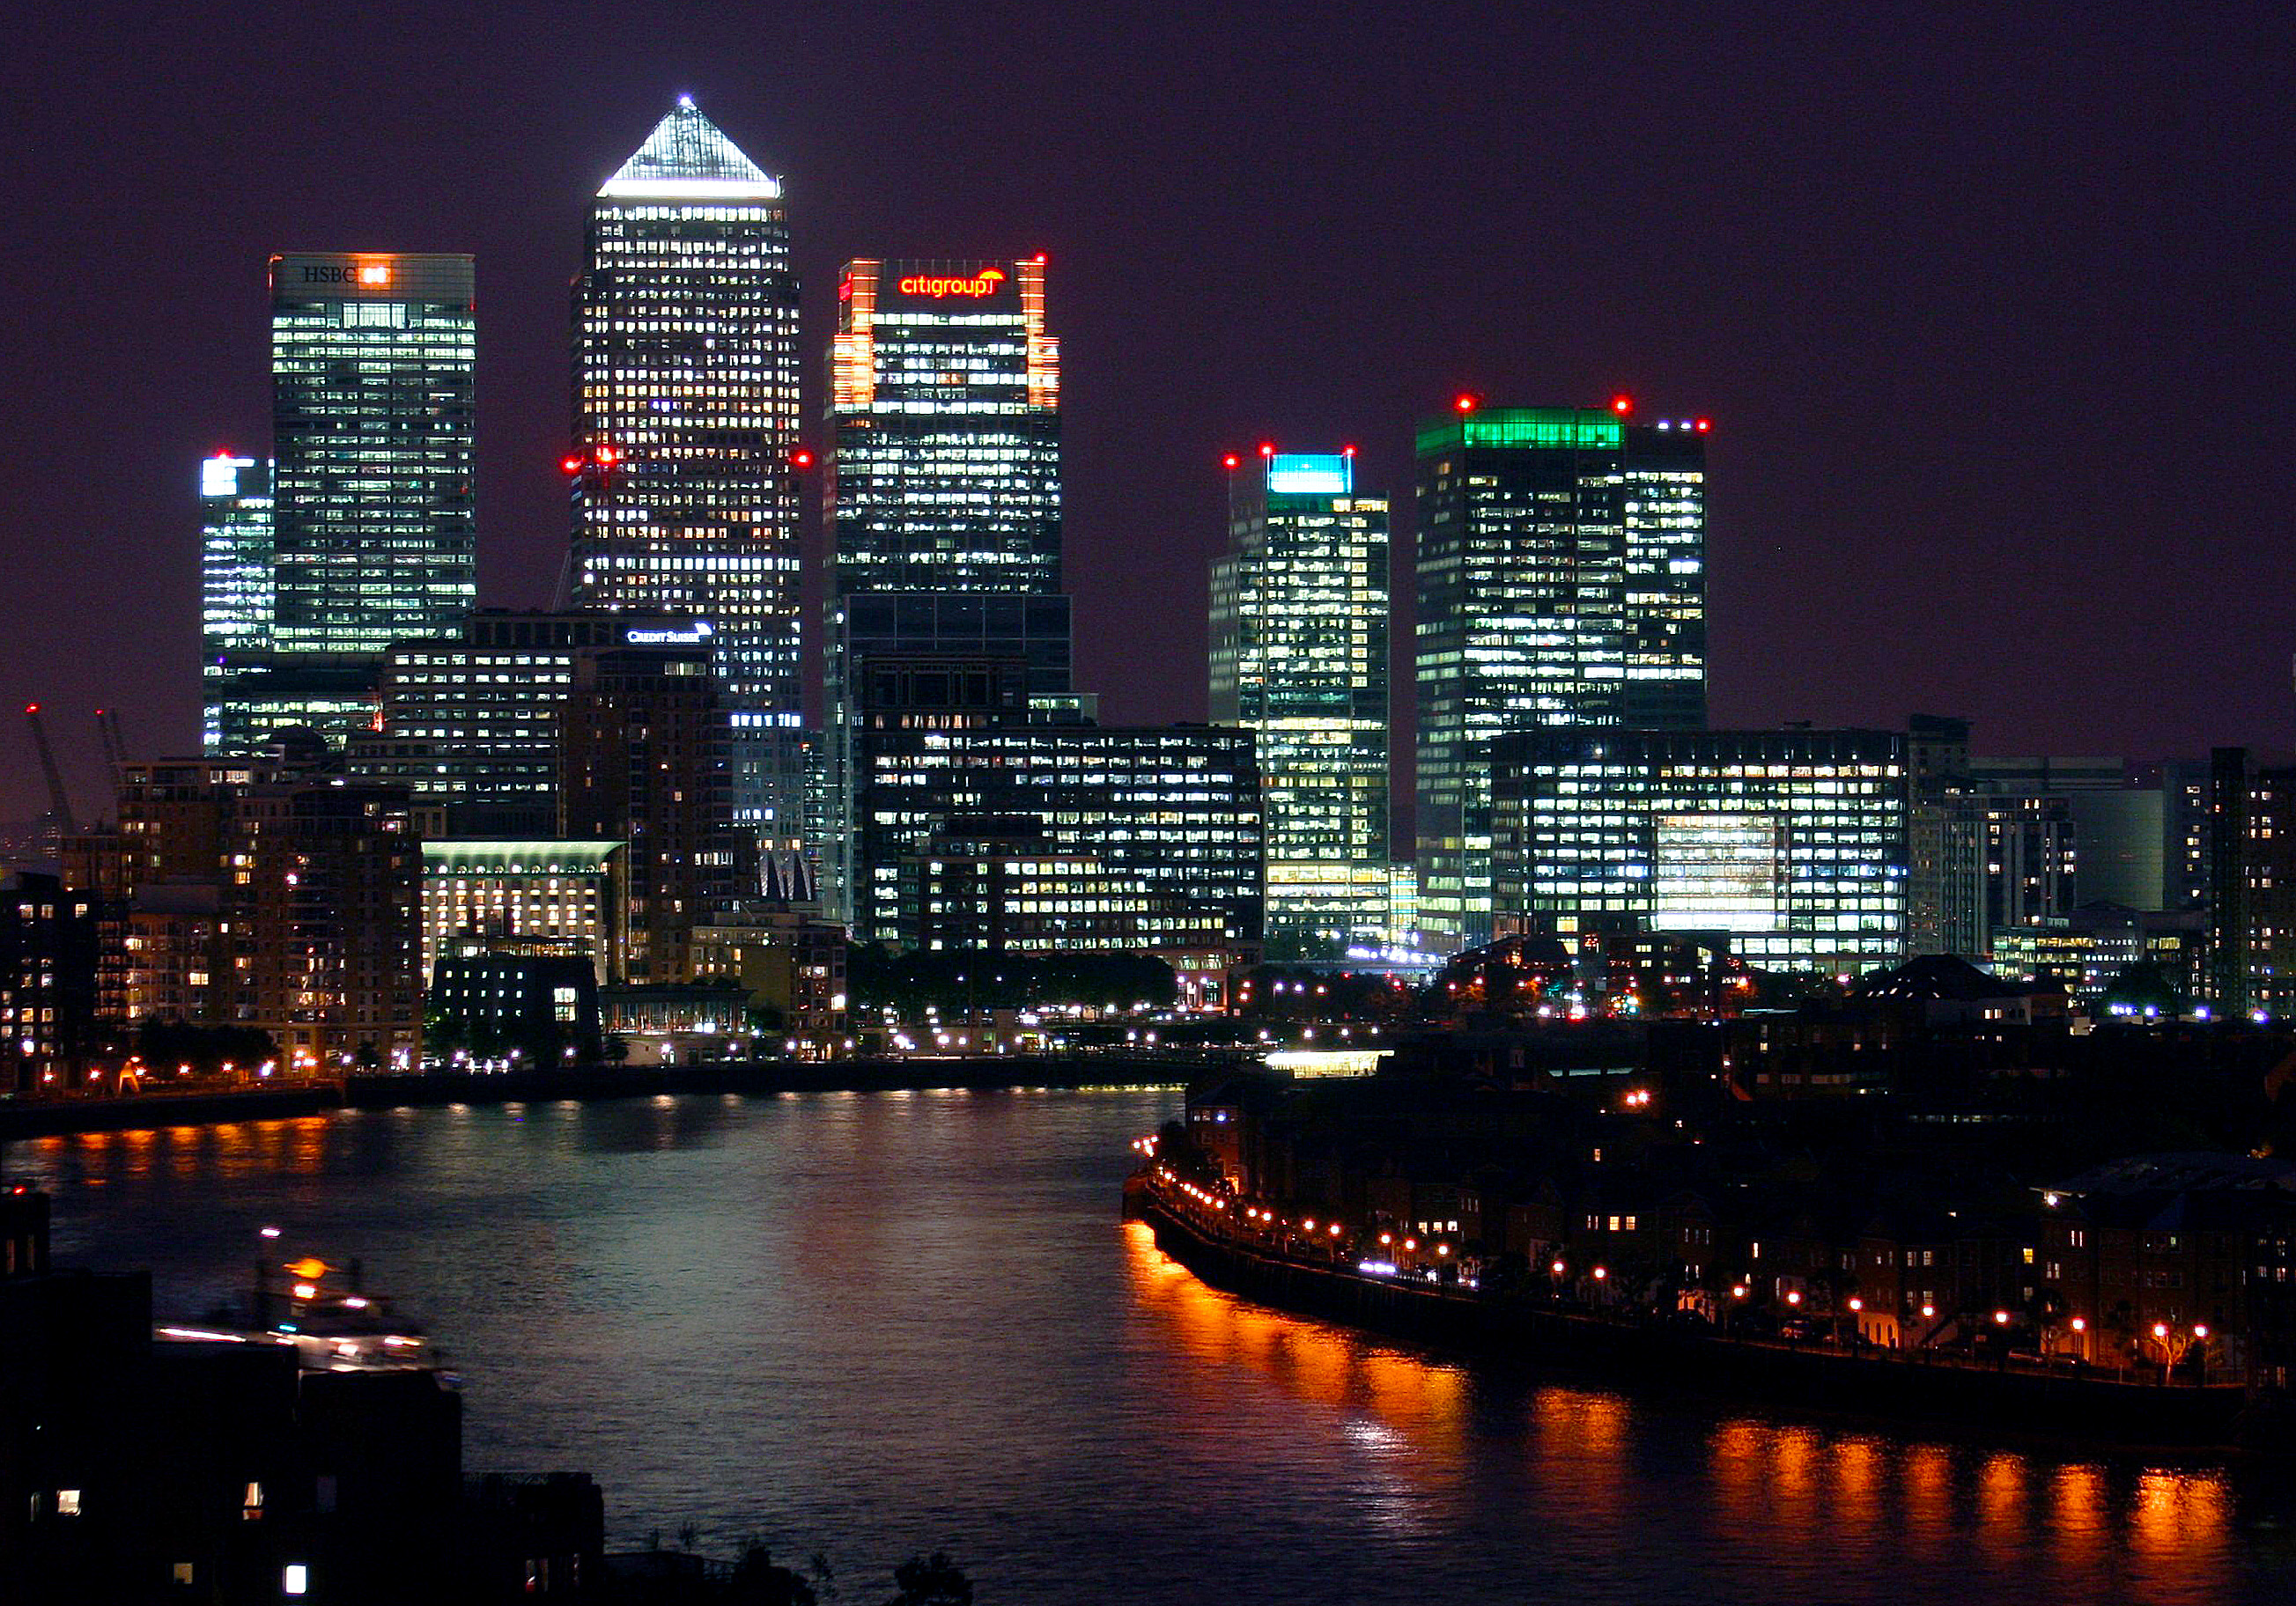 Canary Wharf at Night London